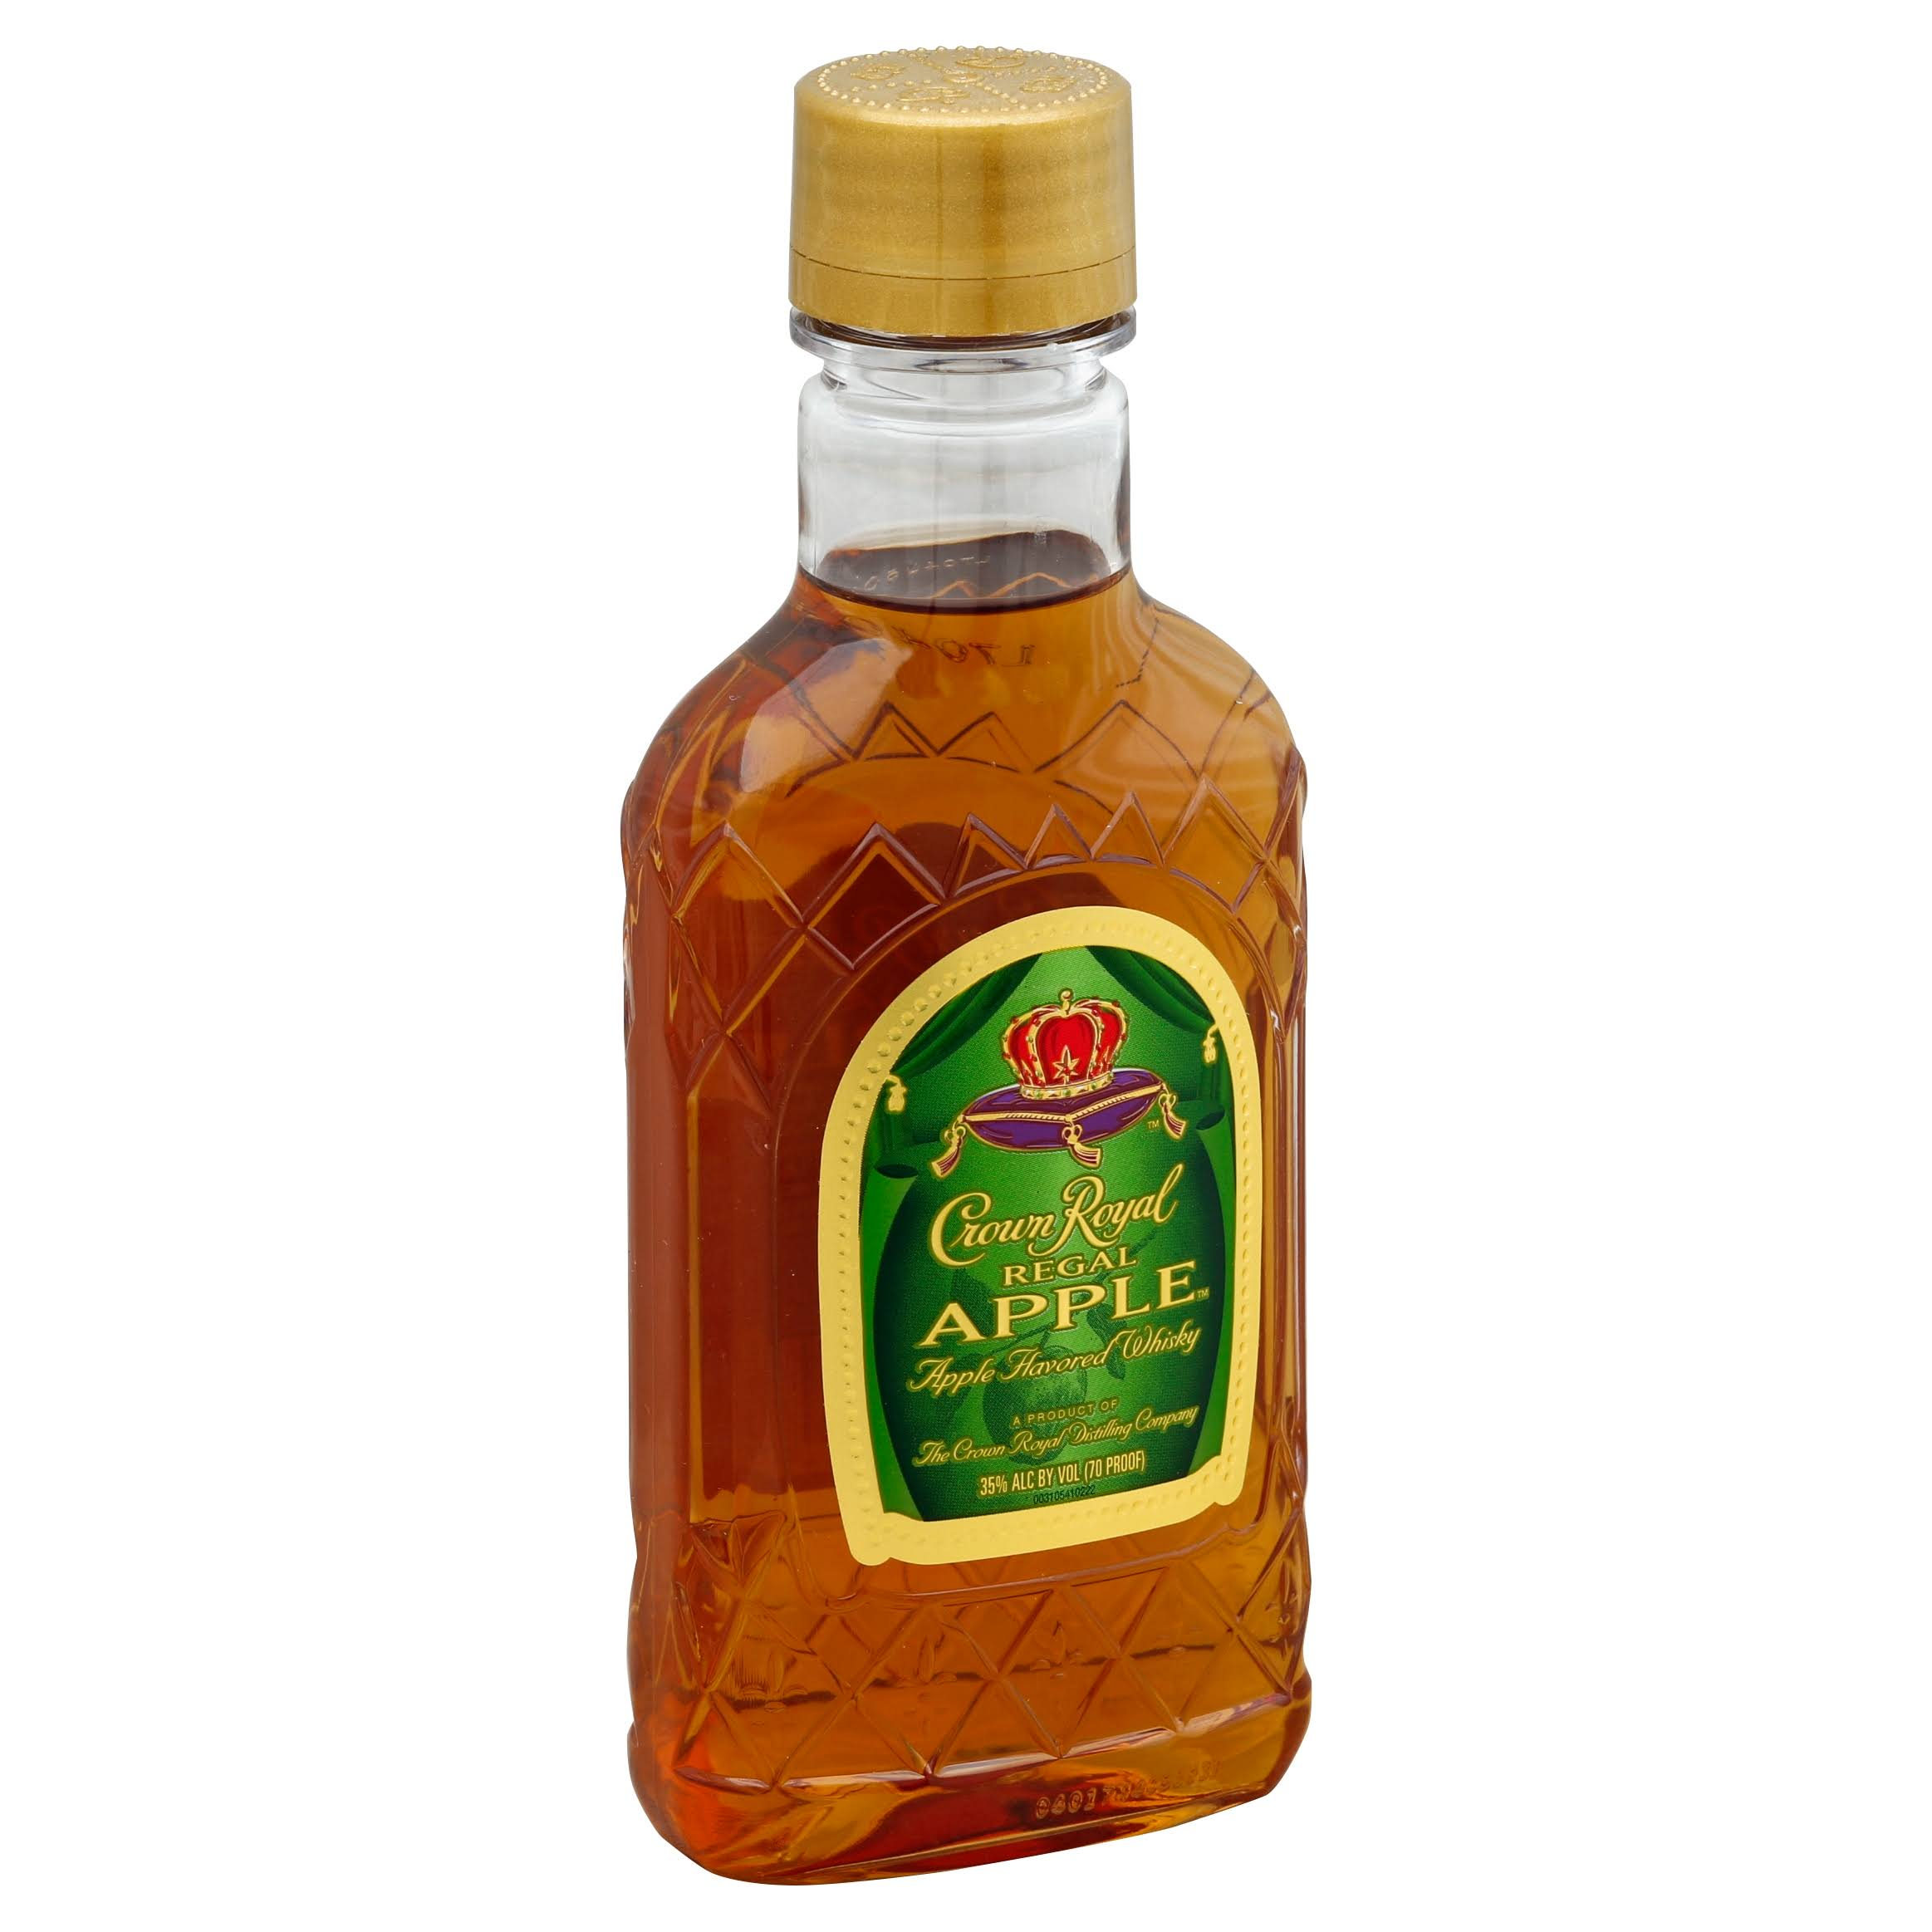 Crown Royal Whisky, Apple Flavored, Regal Apple - 200 ml